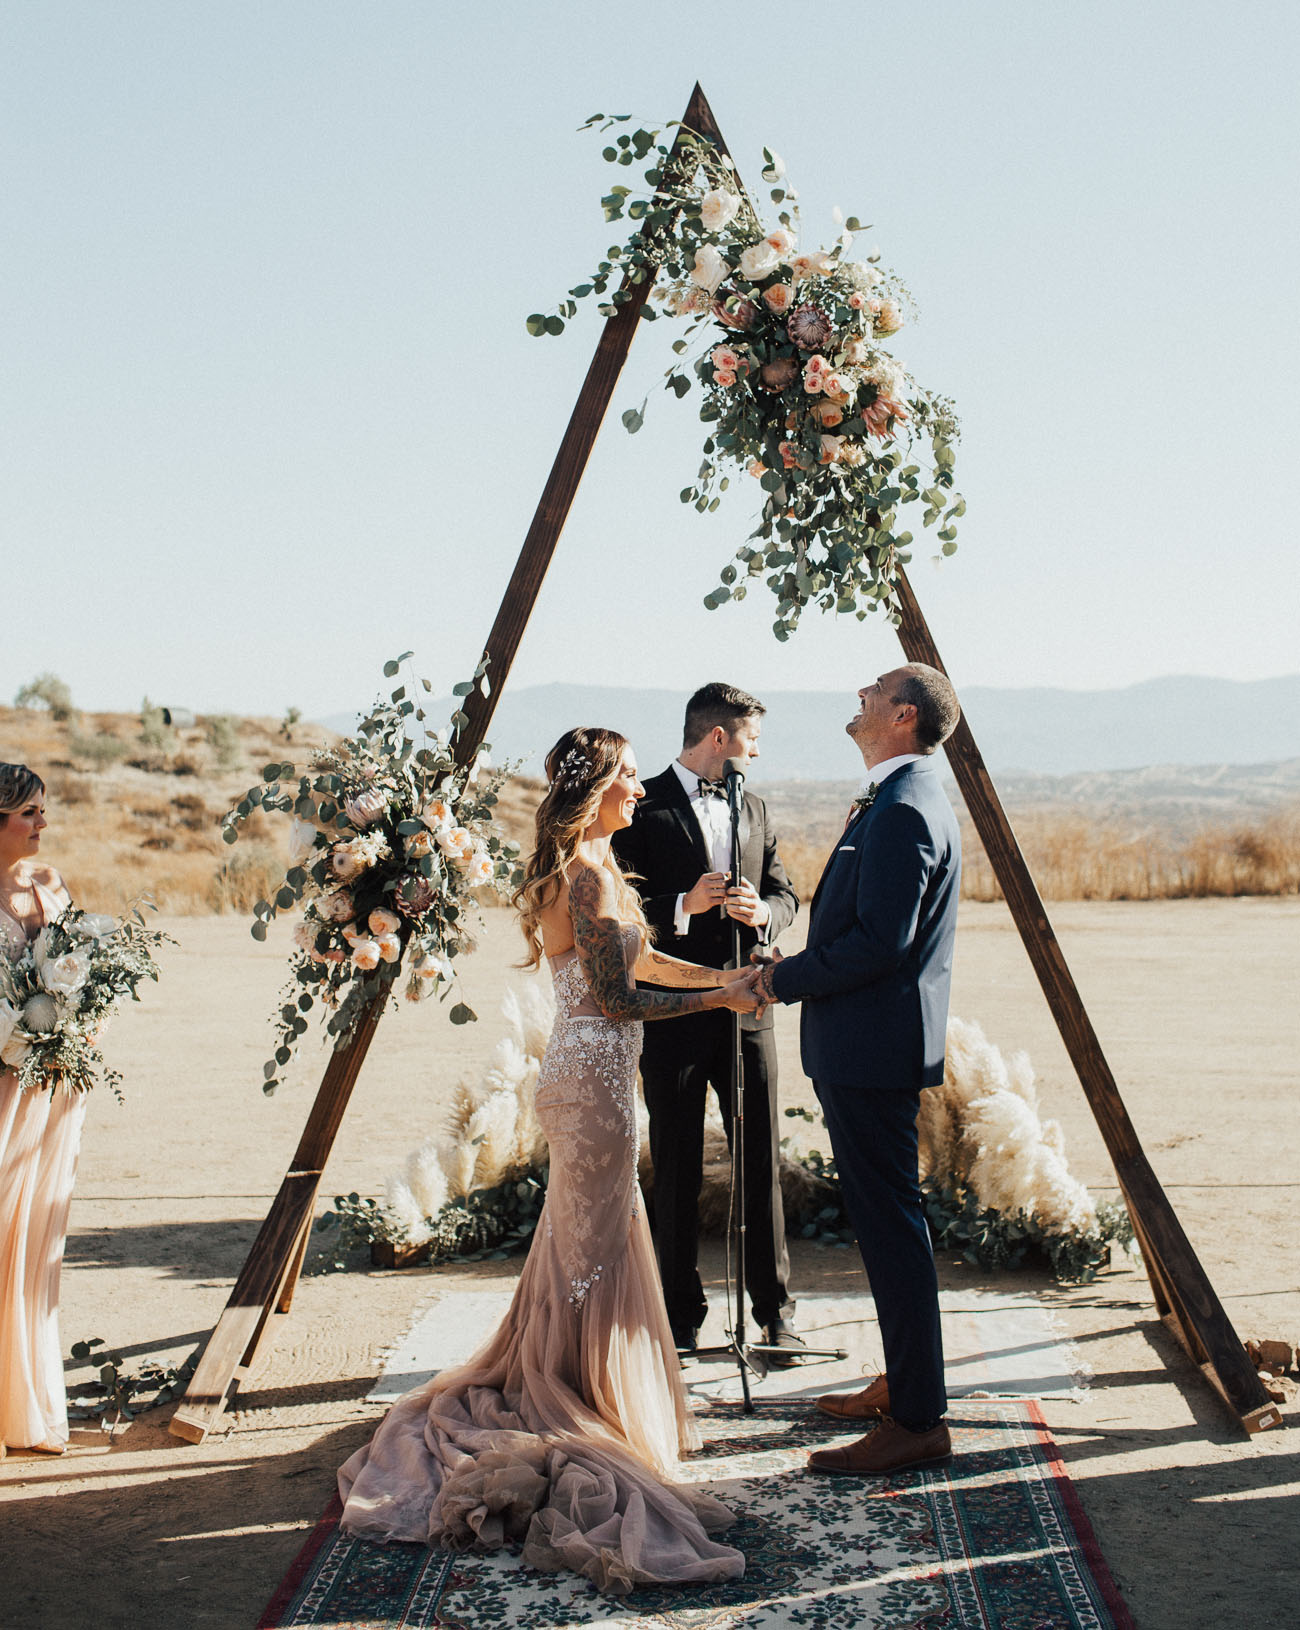 The groom was wearing a navy suit, brown shoes and a rose gold tie